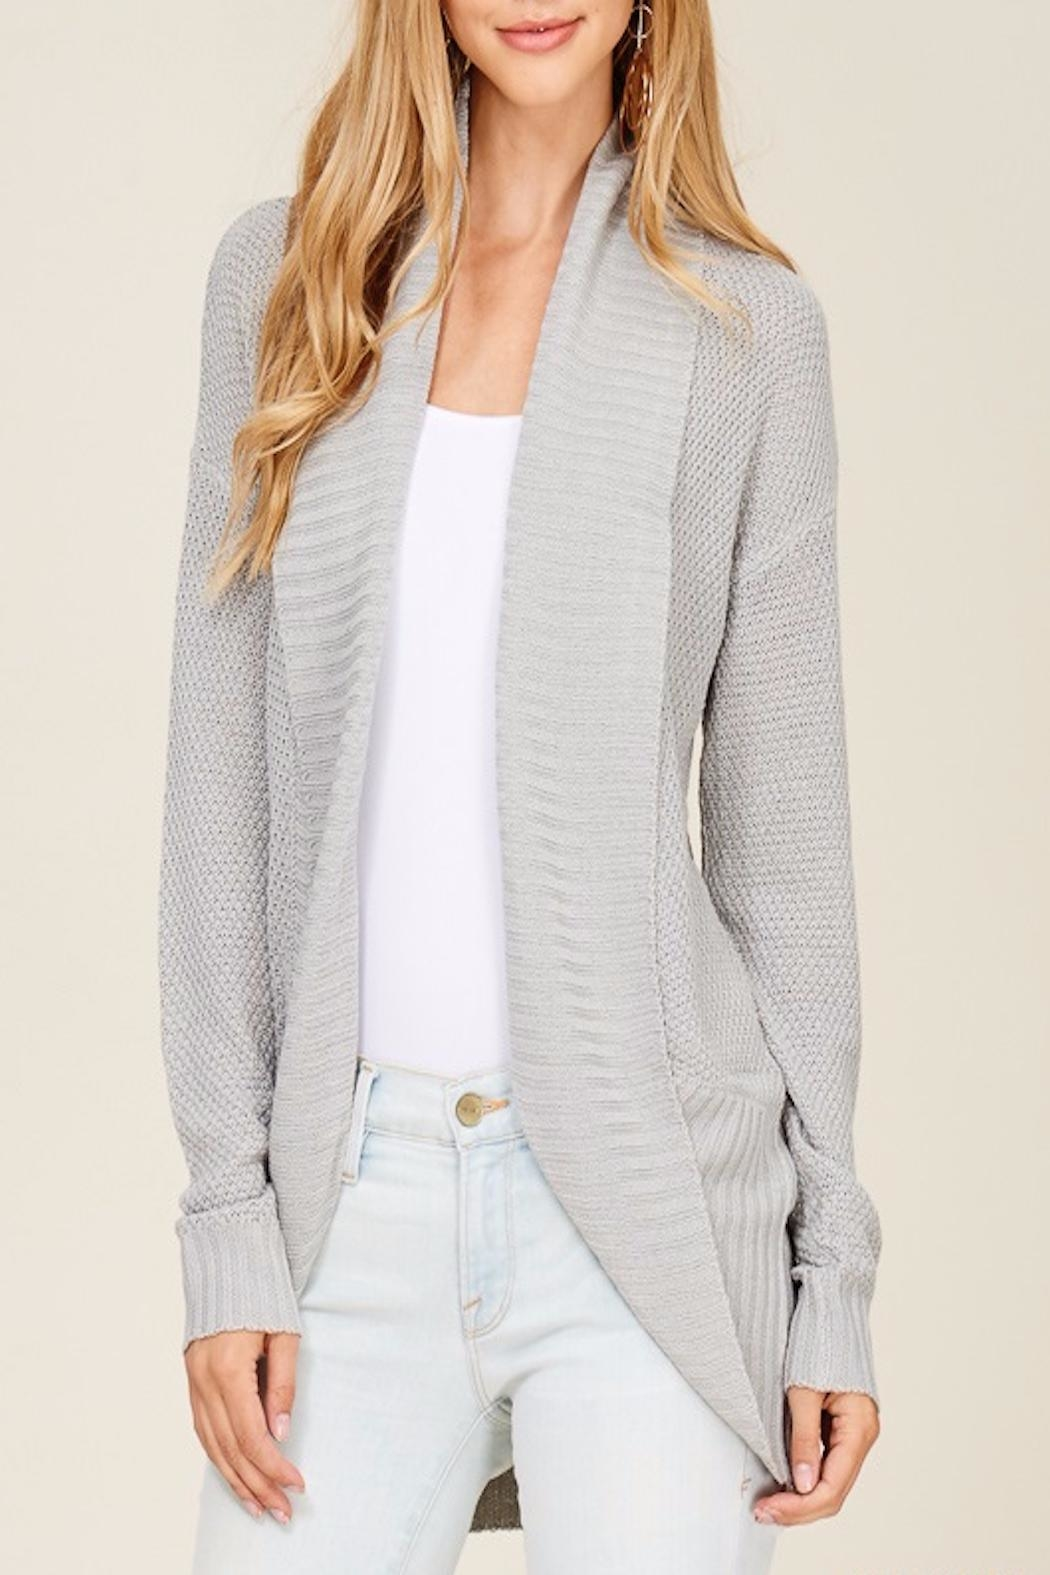 Apricot Lane Rib Banned Cardigan-Silver - Front Cropped Image